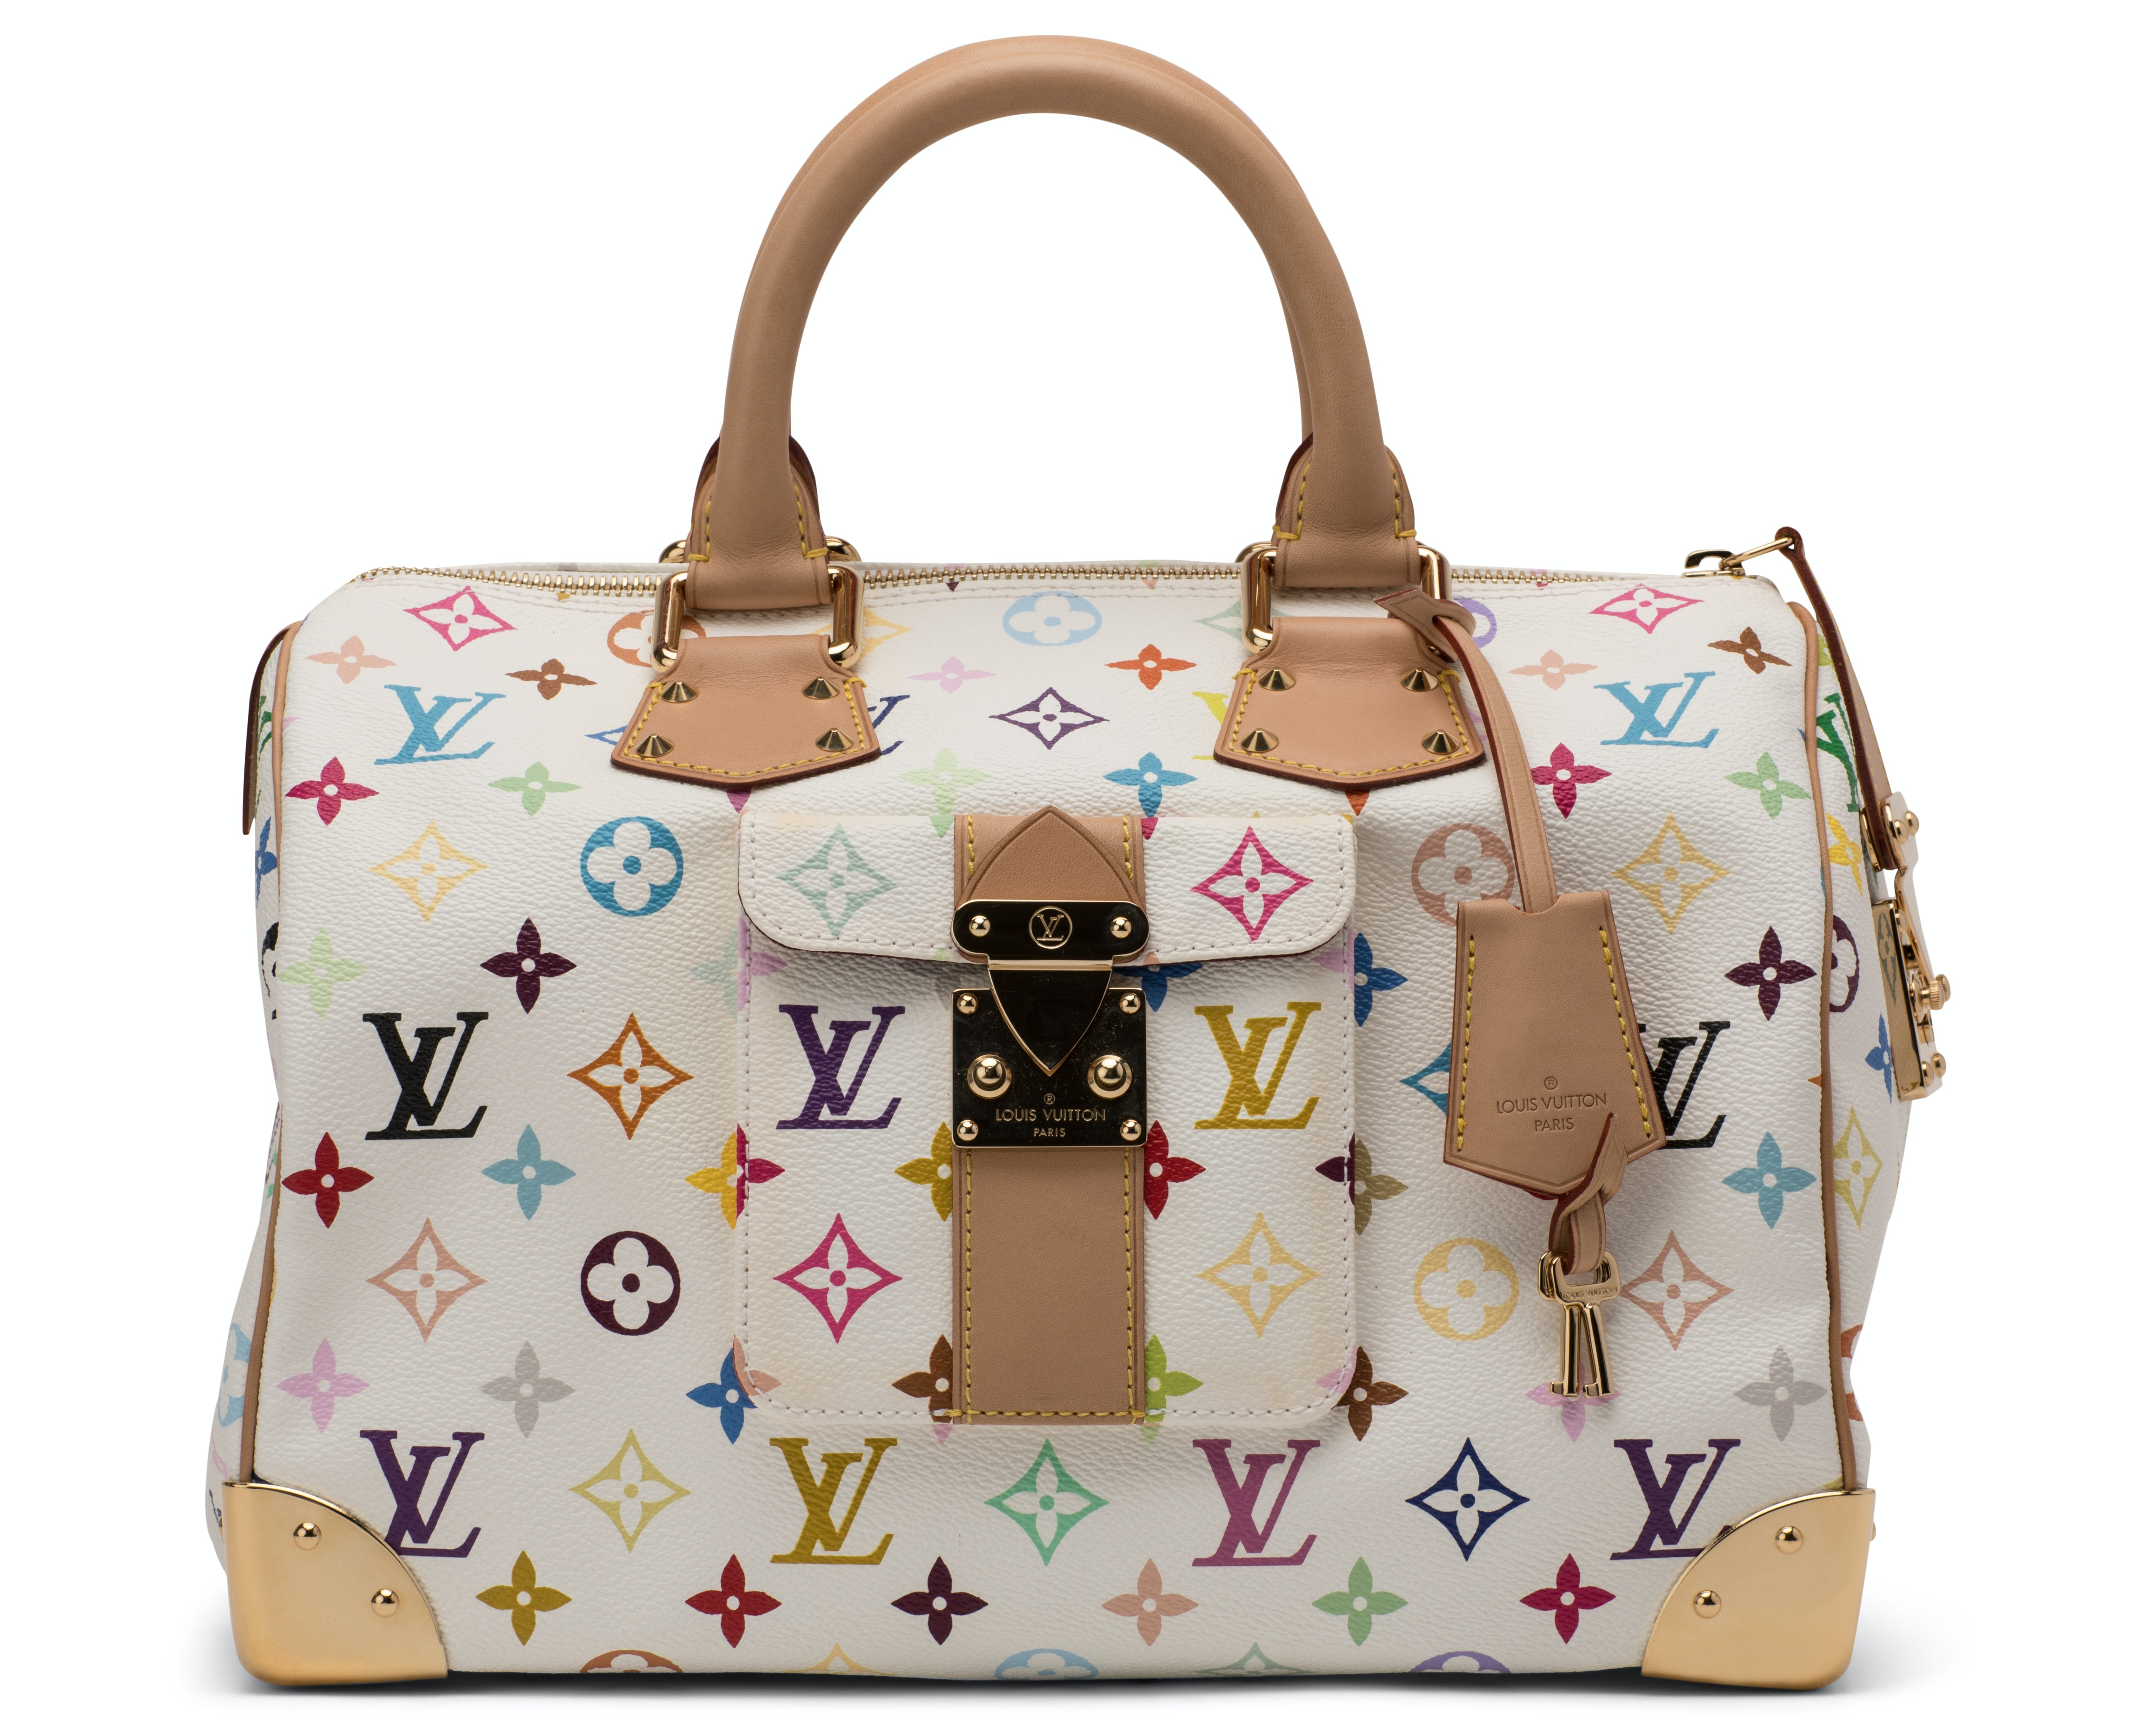 Louis Vuitton Speedy Monogram Multicolore 30 White